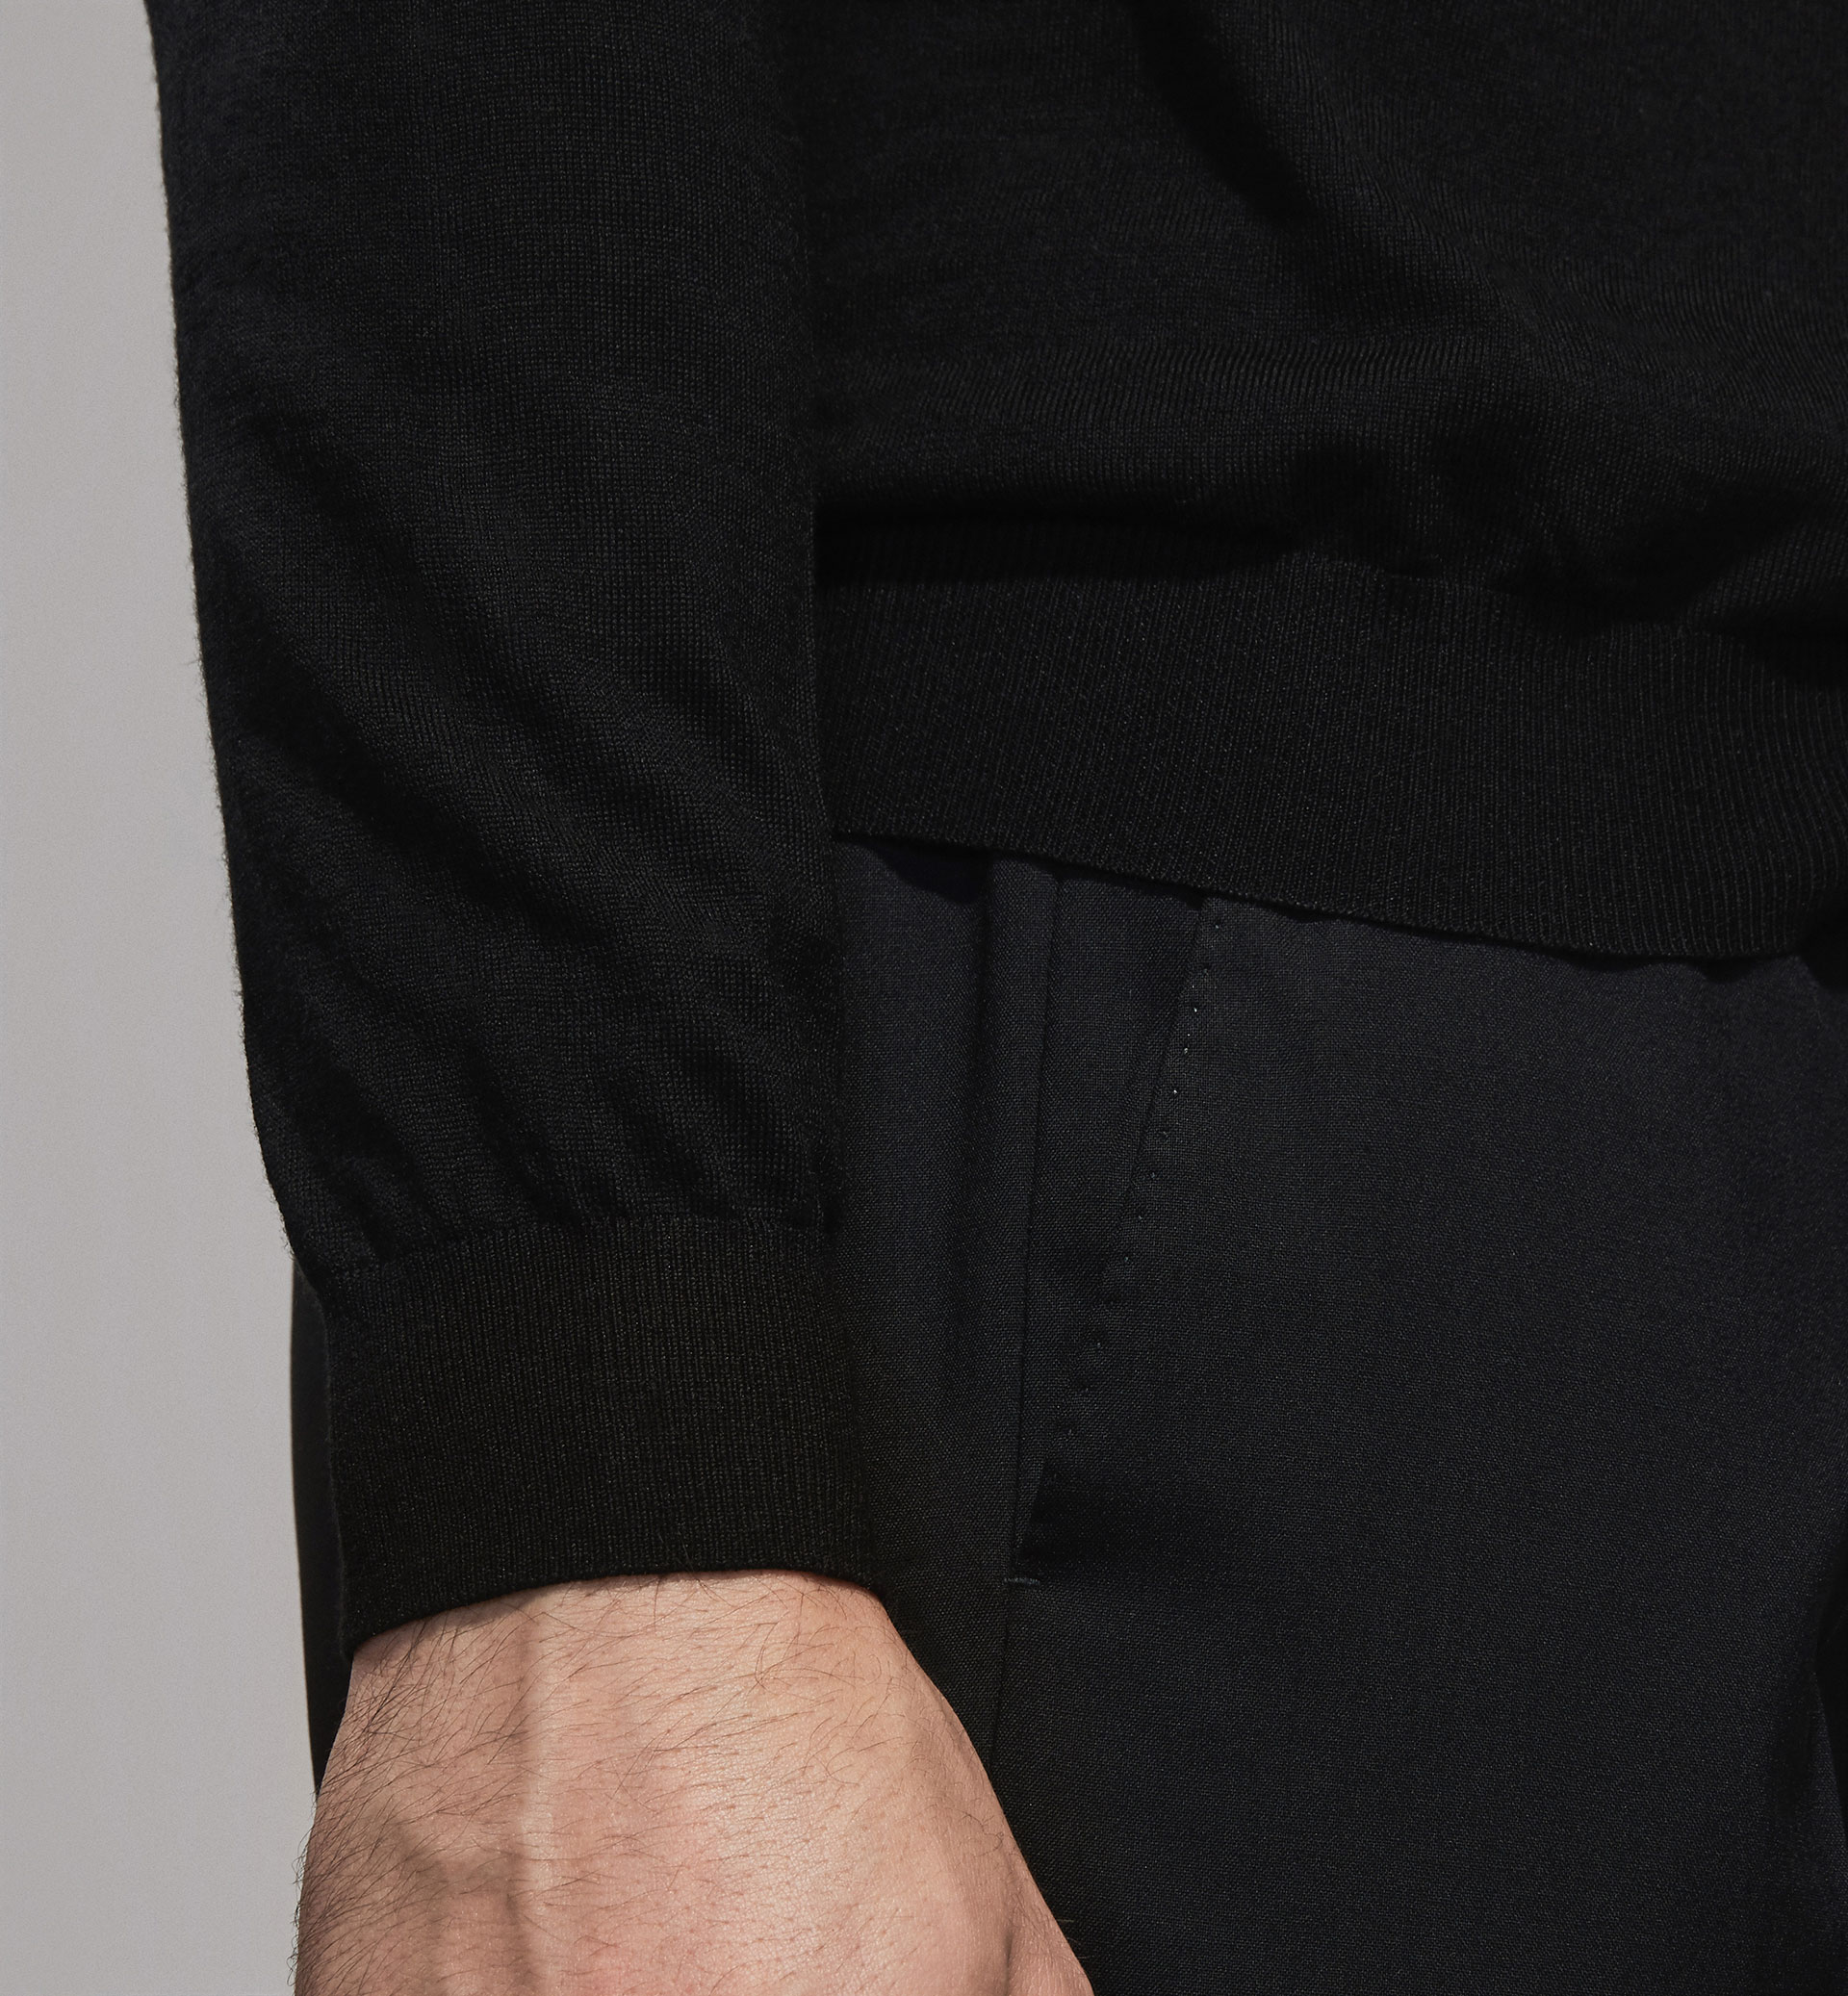 PERSONAL TAILORING 100% MERINO WOOL SWEATER WITH POLO NECK